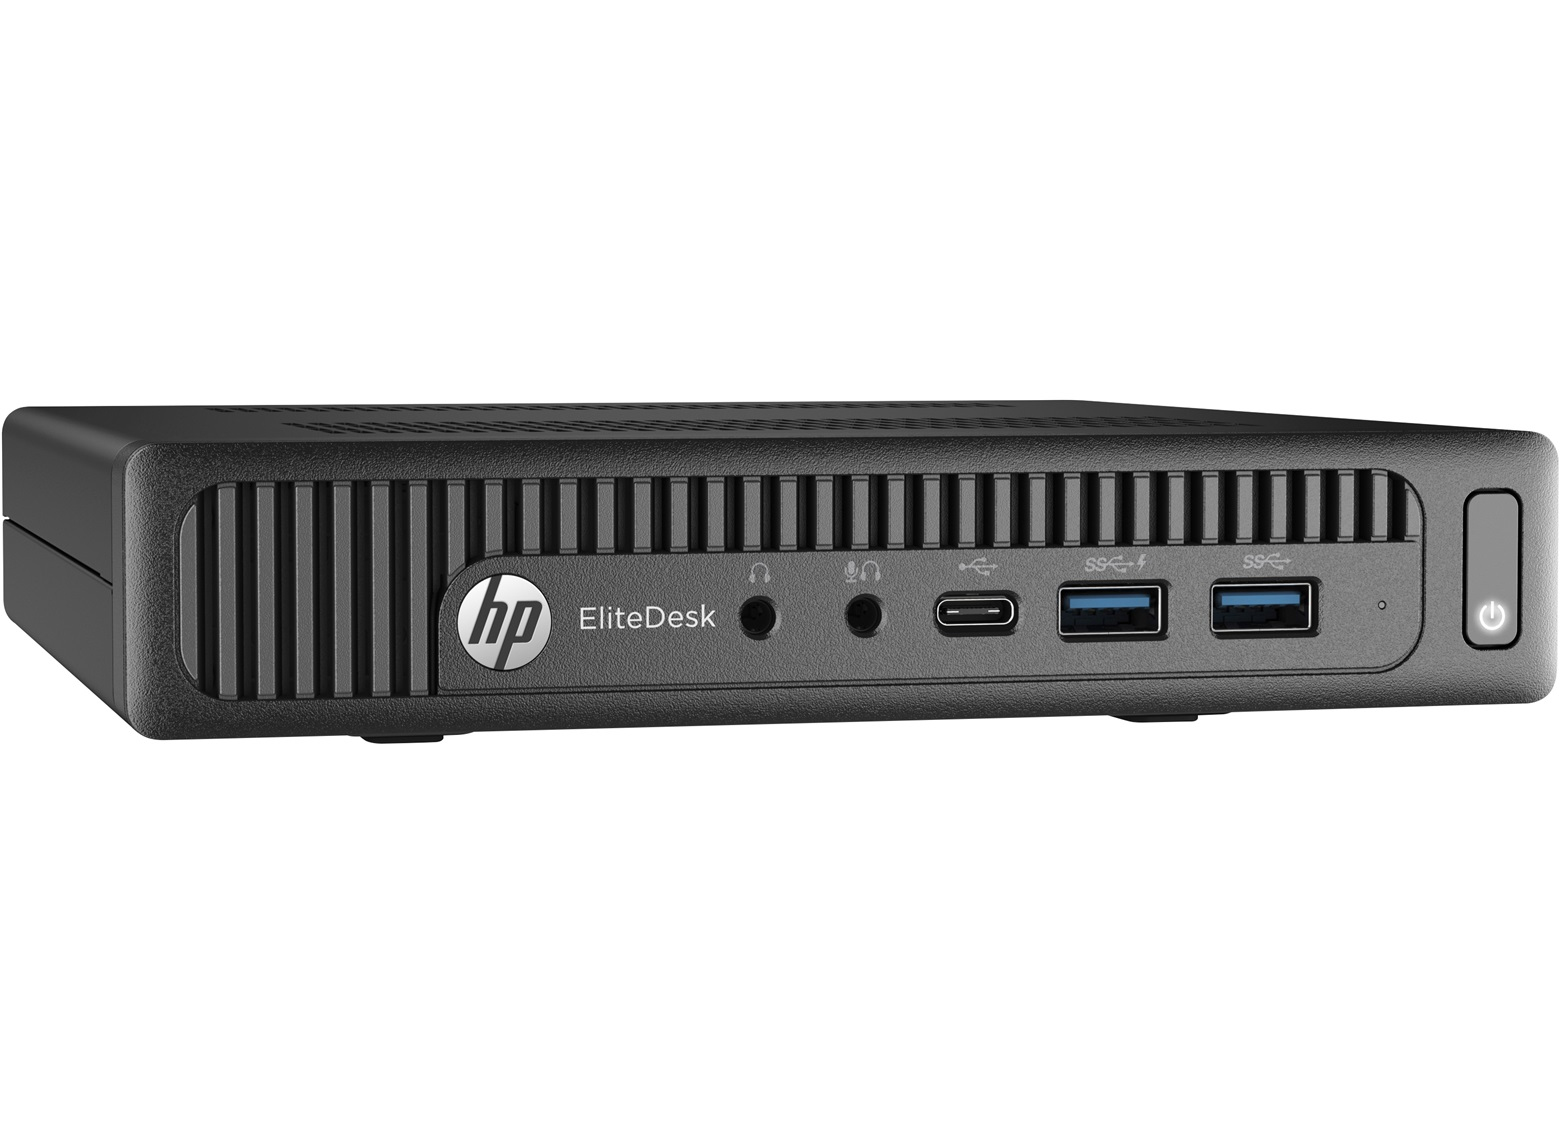 HP EliteDesk 800 G2 3.2GHz i5-6500 1L sized PC Black